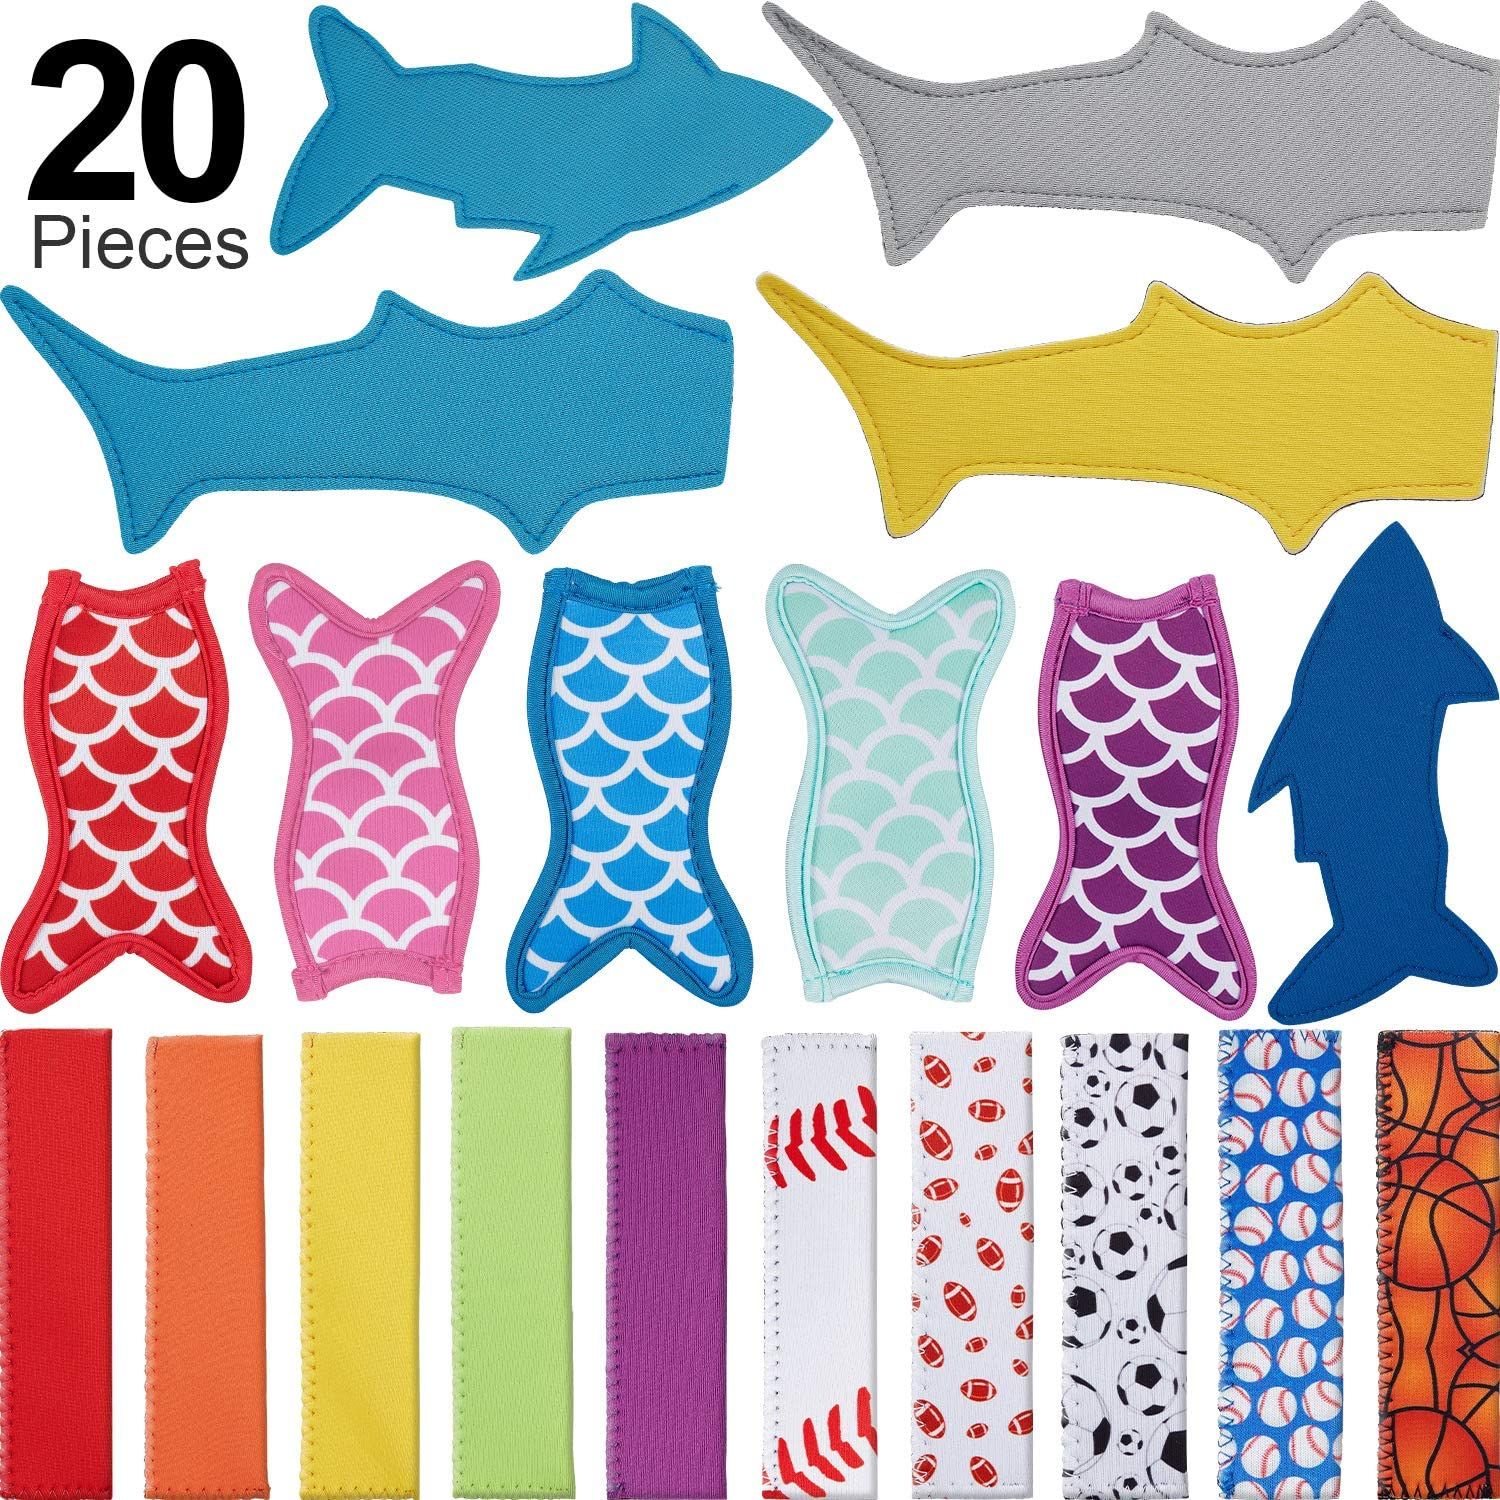 20 Pieces Ice Pop Holders Popsicle Holders Reusable Popsicle Sleeves Anti-freezing Popsicle Holders, 4 Styles, Mermaid Tail Shape, Shark Shape, Ball Pattern and Color Style